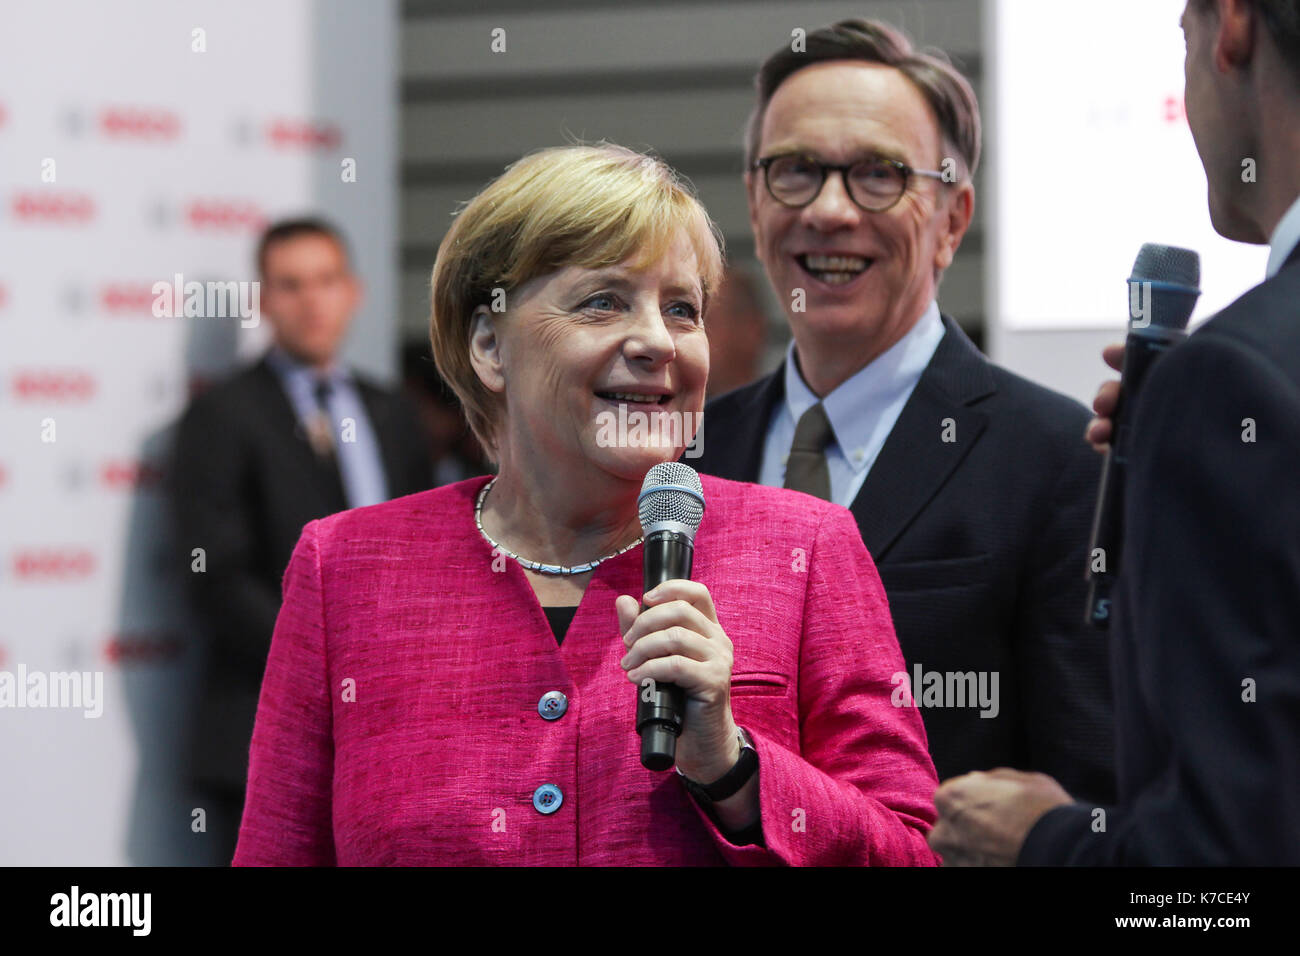 Frankfurt, Germany. 14th September, 2017. International Motor Show 2017 (IAA, Internationale Automobil-Ausstellung), opening walk with Angela Merkel, chancellor of Germany. here: Angela Merkel, Matthias Wissmann (president of German Association of the Automotive Industry, VDA, Verband der Automobilindustrie). Credit: Christian Lademann - Stock Image